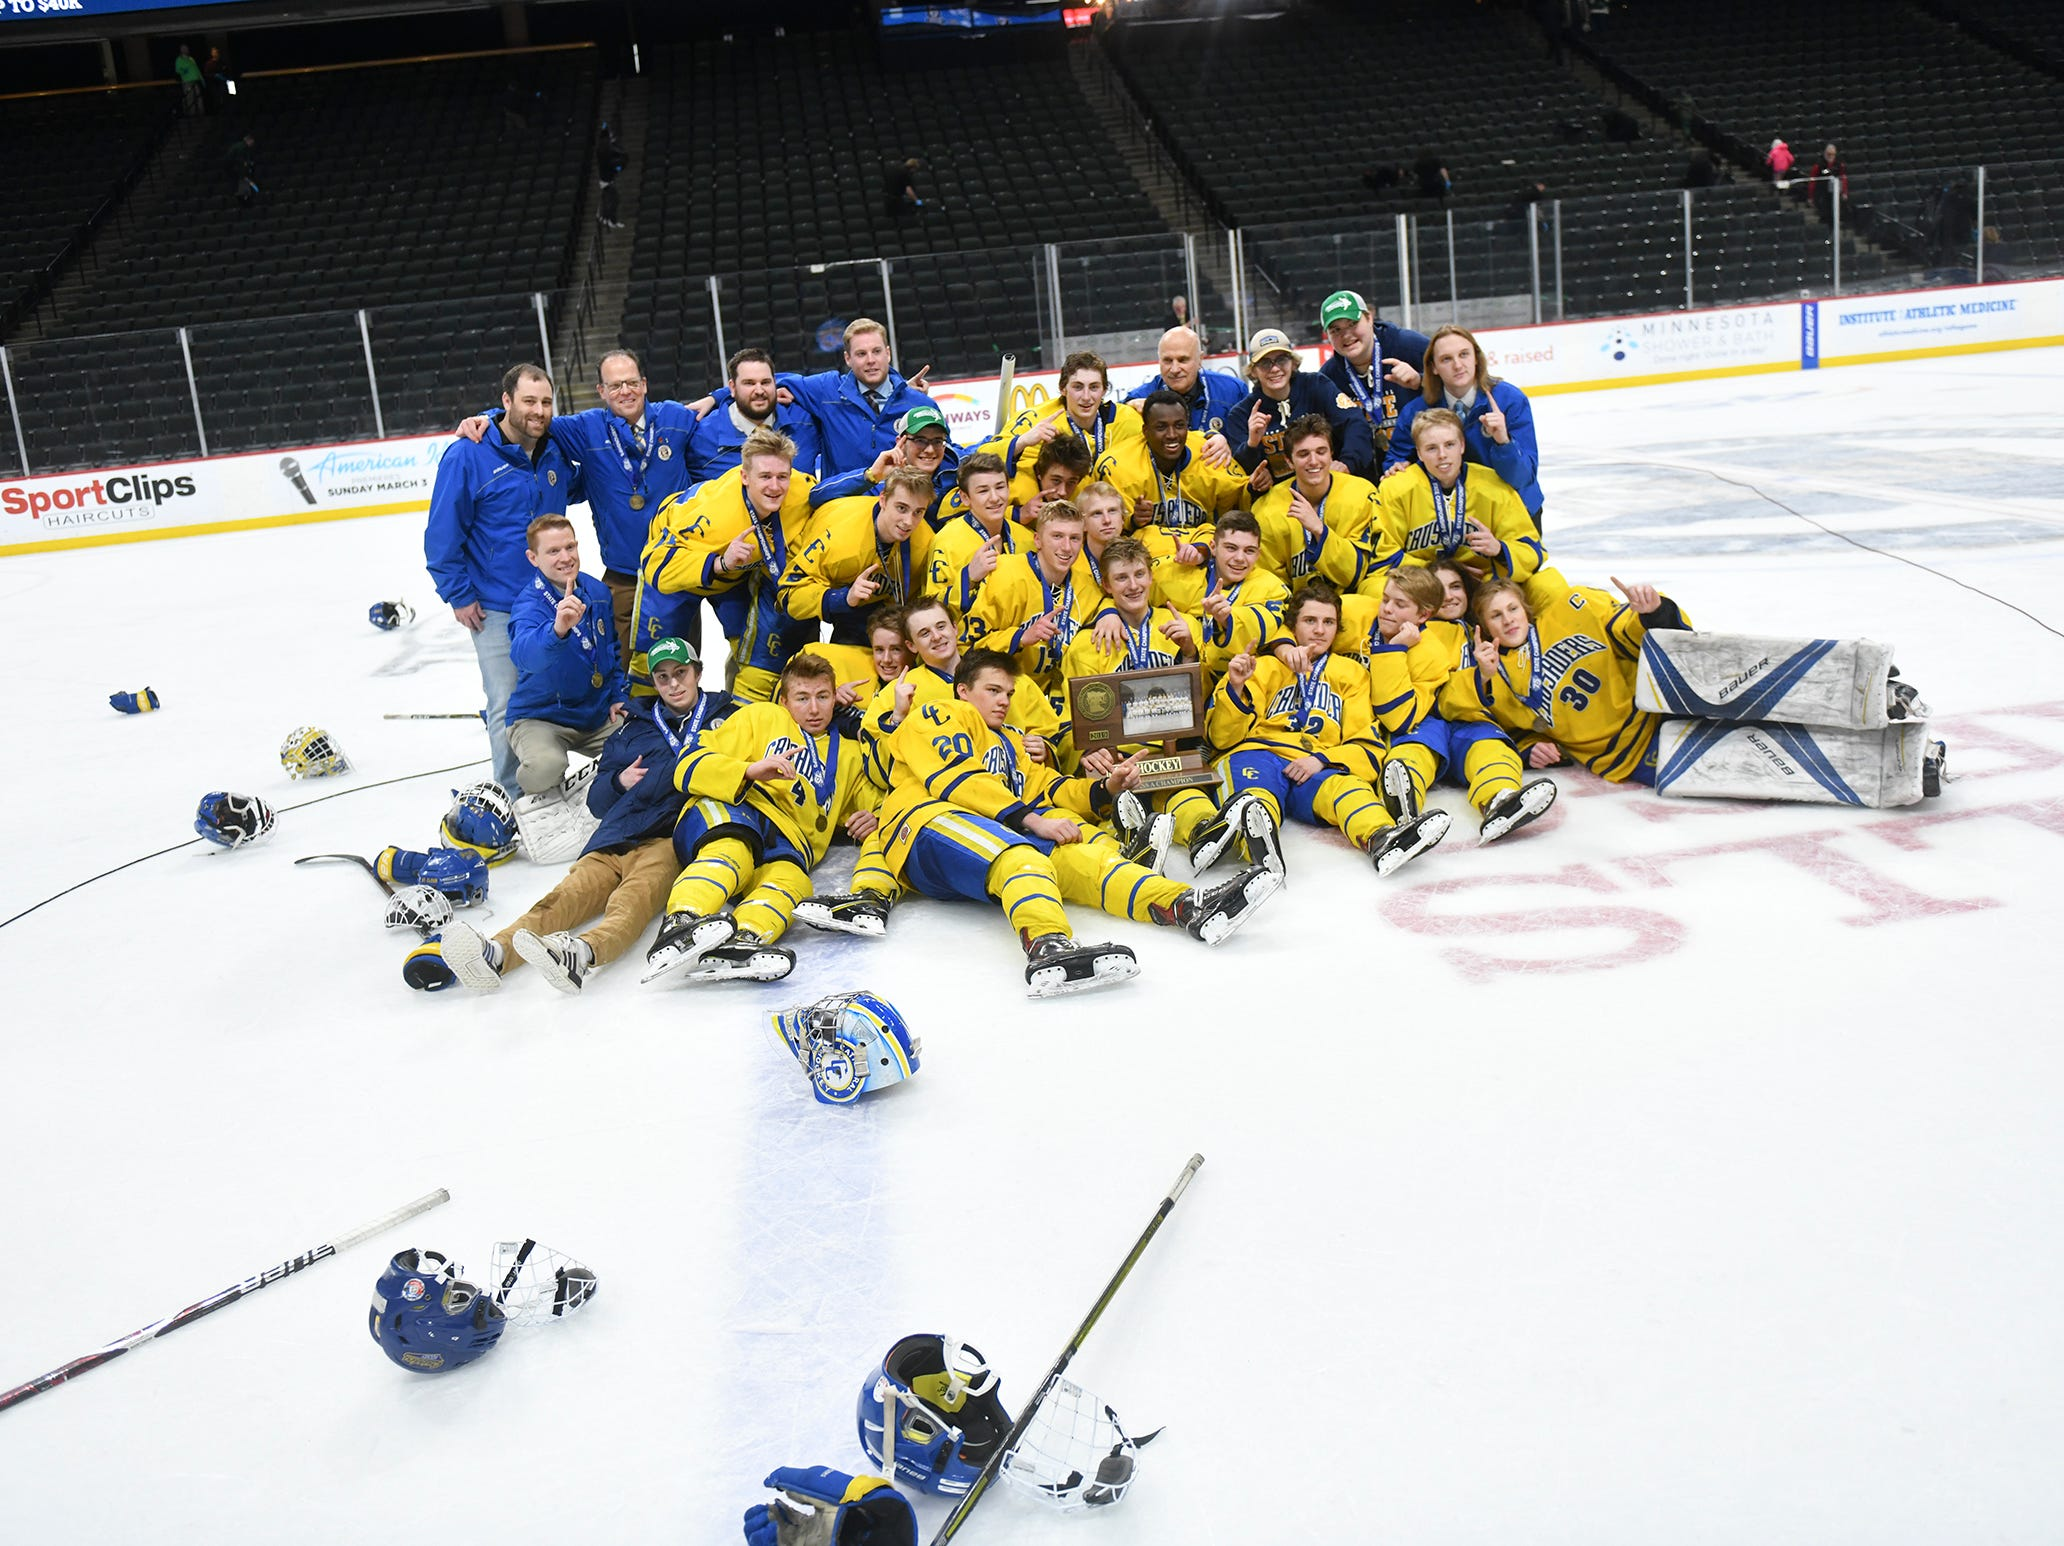 Cathedral' players pose for photographs with their first place trophy following their 5-2 win against Greenway in the state Class A championship game Saturday, March 9, 2019, at the Xcel Energy Center in St. Paul.